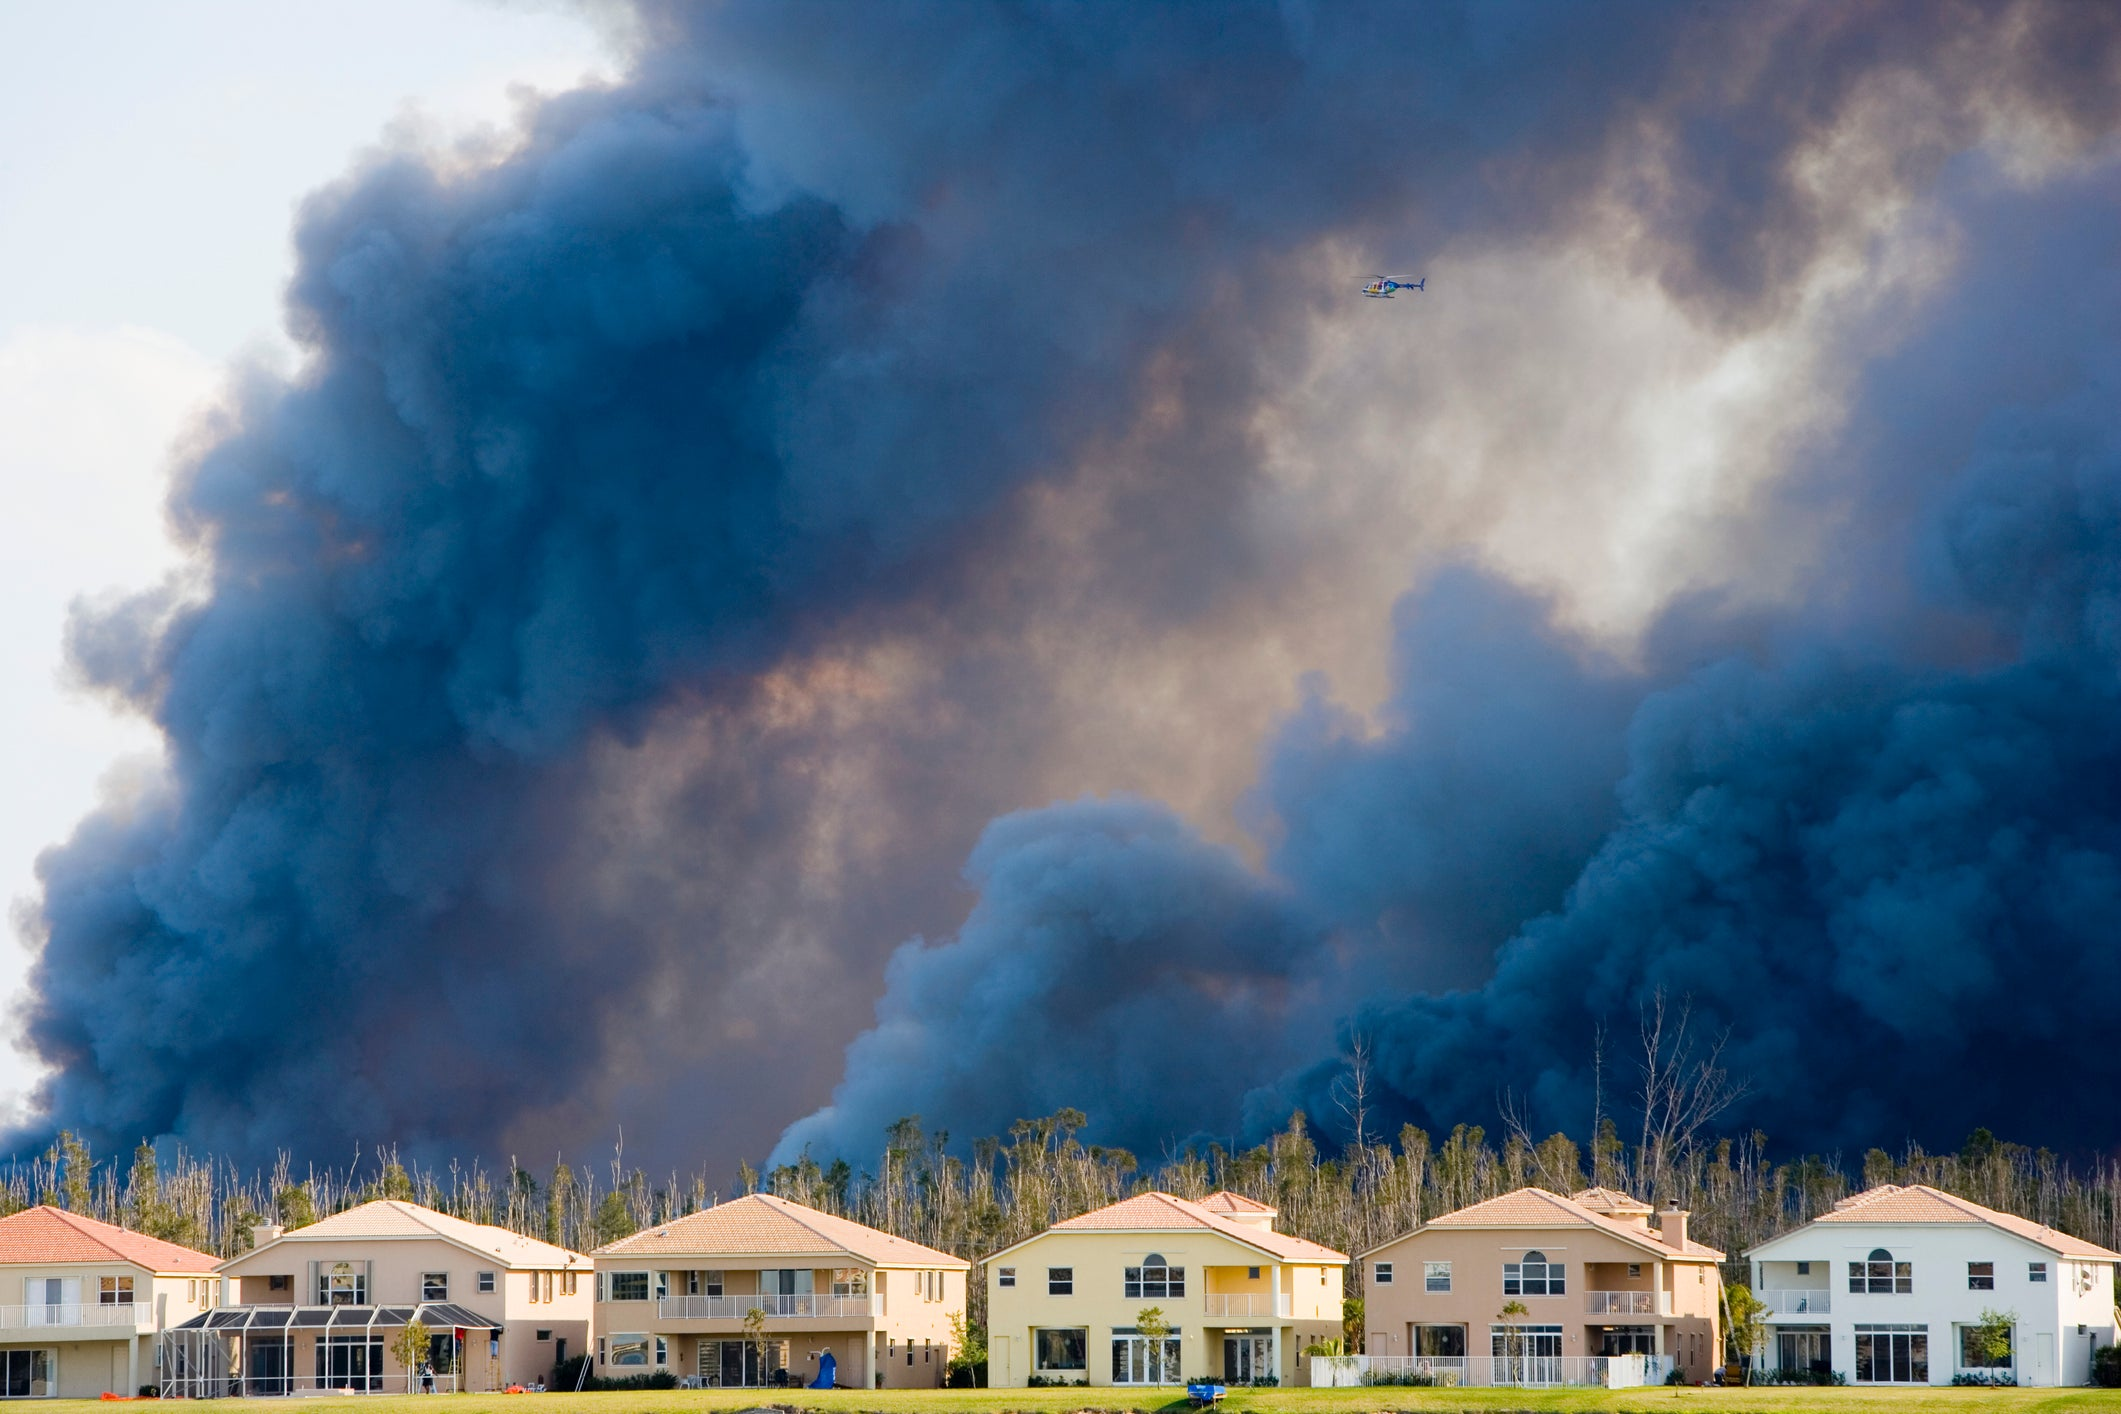 West Coast Wildfires: What to Do If Your Home Is at Risk